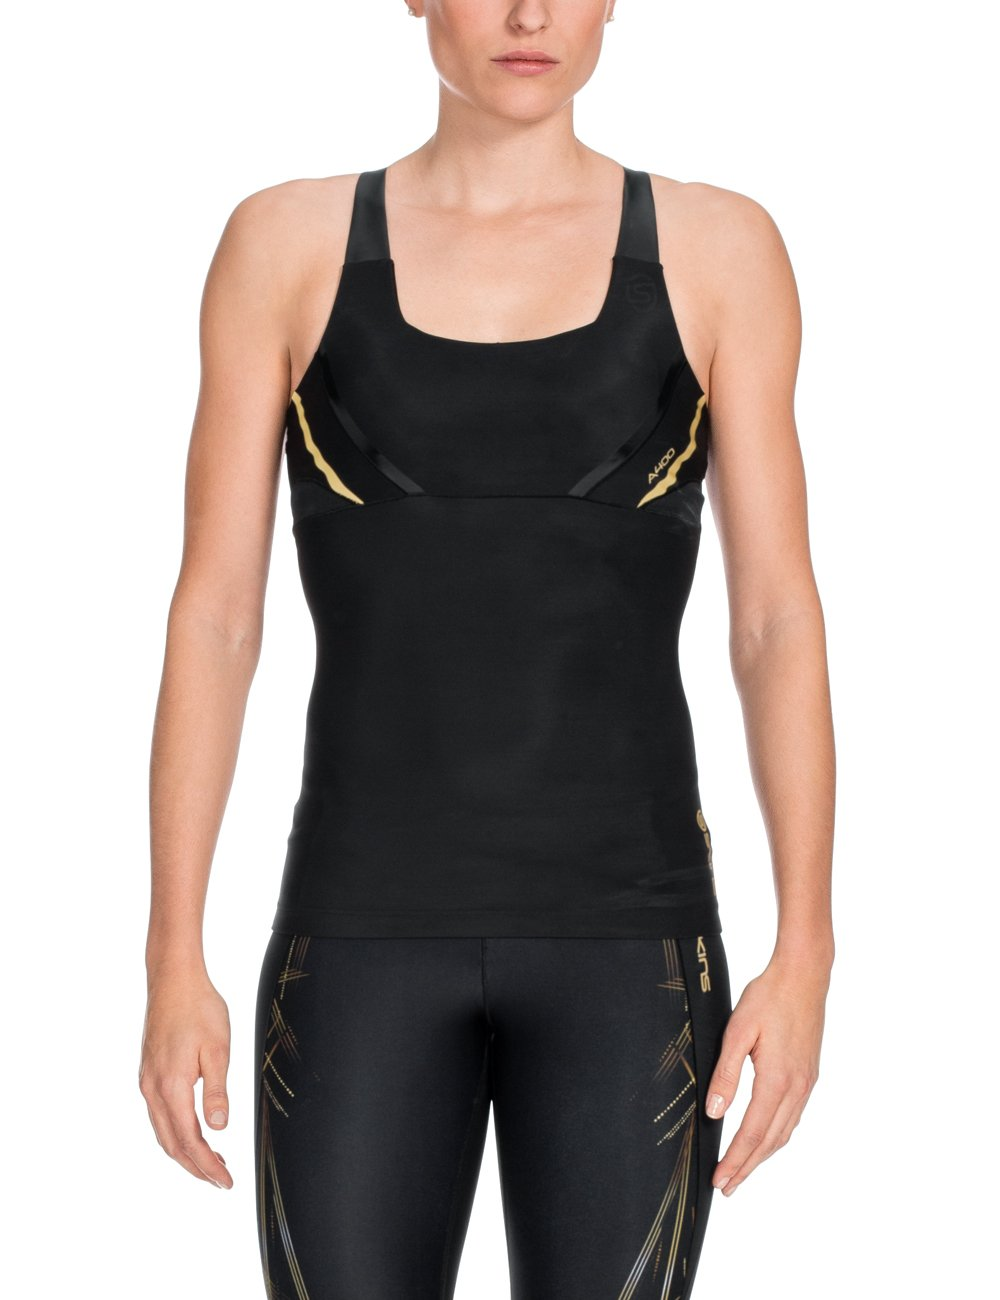 Skins Women's A400 Compression Tank Top